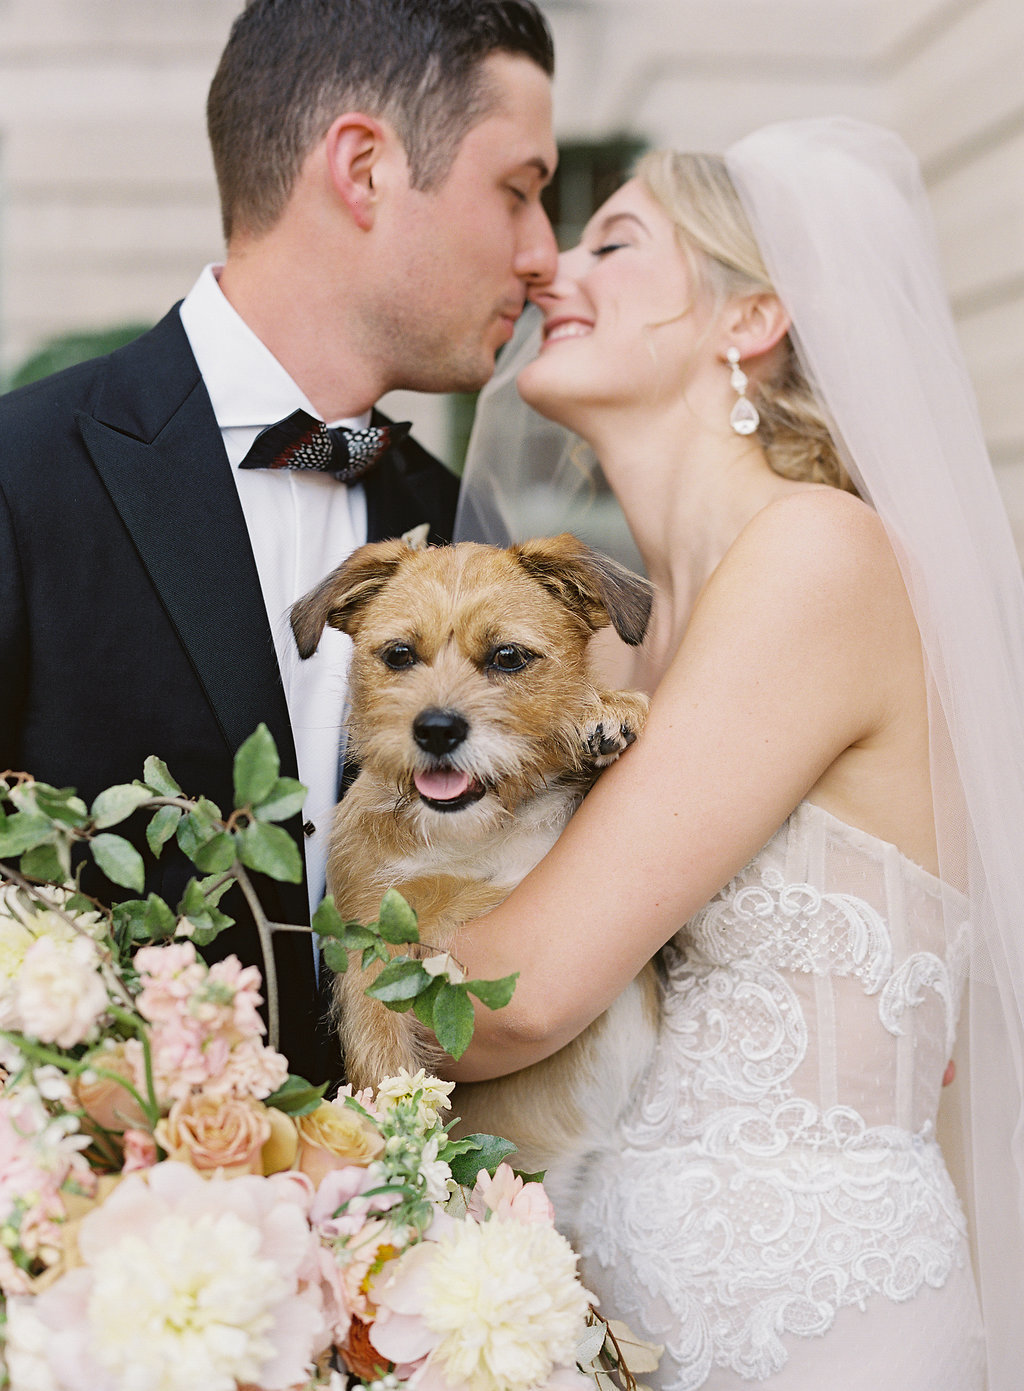 anderson house, laura gordon, pamela barefoot dc wedding planner, wedding dog